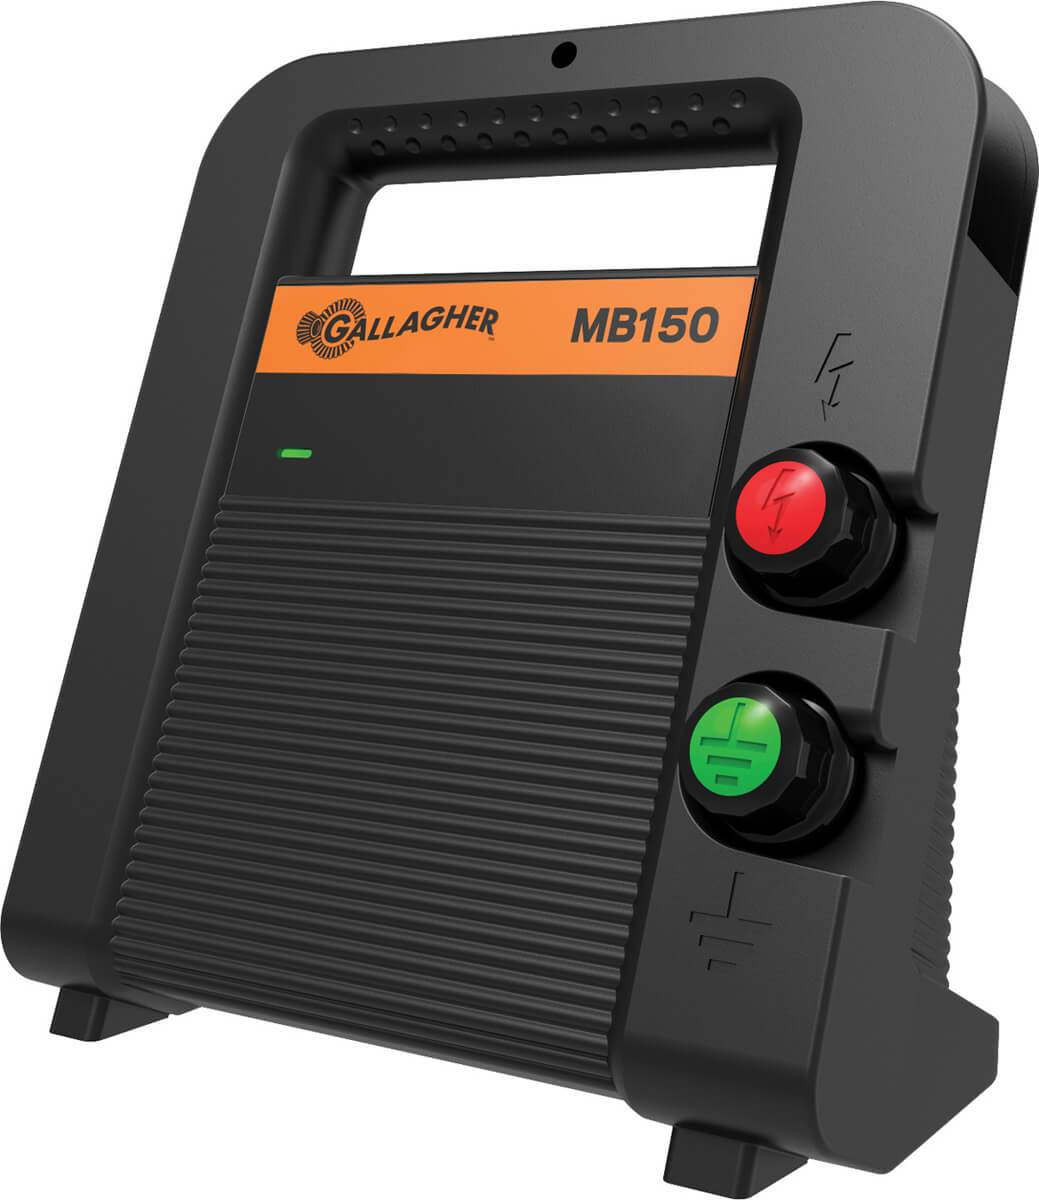 Best Gallagher Electric Fence Charger Energizer Mb150